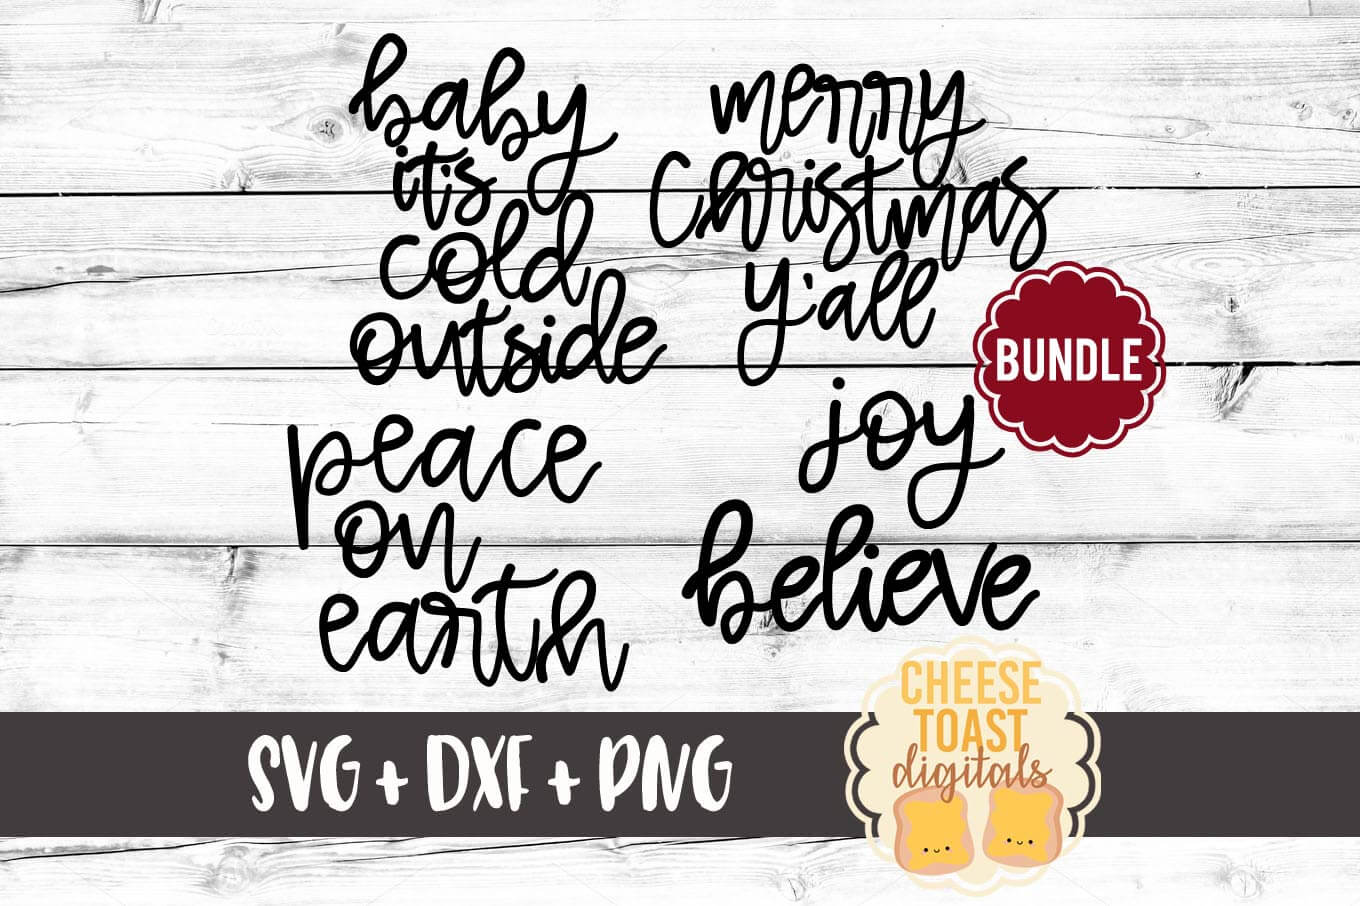 Download Free Christmas Hand Lettered Bundle Graphic By Cheesetoastdigitals for Cricut Explore, Silhouette and other cutting machines.